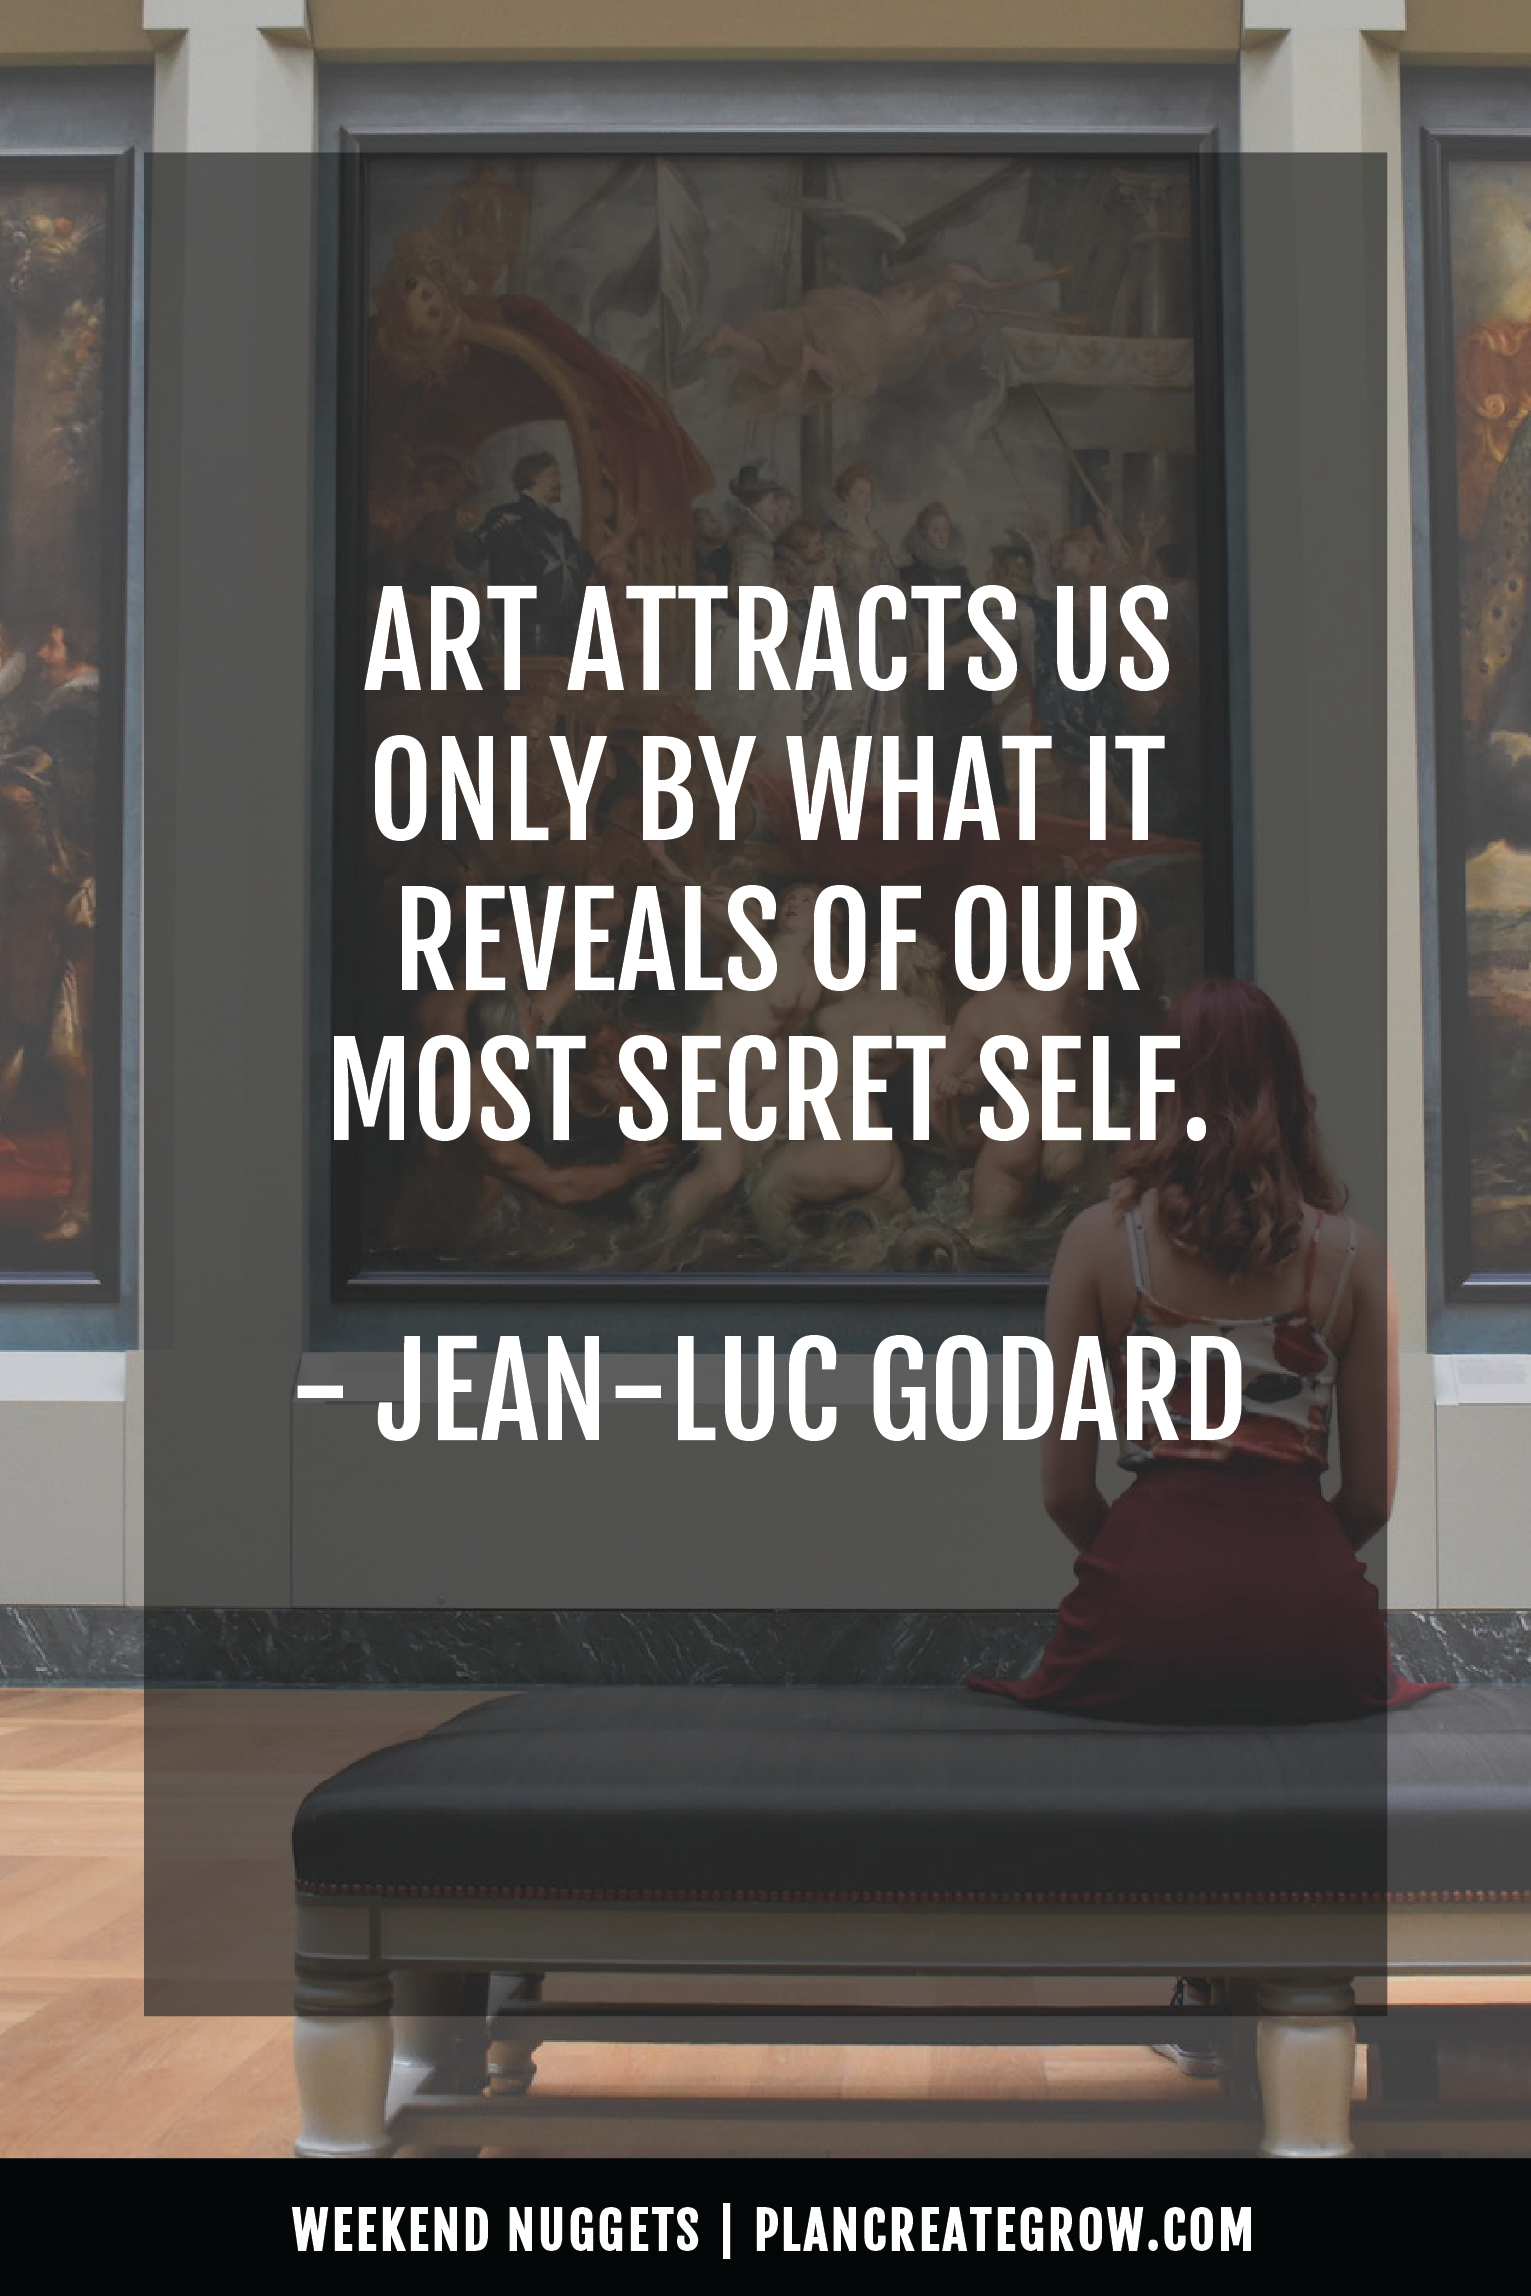 """""""Art attracts us only by what is reveals of our most secret self."""" - Jean-Luc Goddard  This image forms part of a series called Weekend Nuggets - a collection of quotes and ideas curated to delight and inspire - shared each weekend. For more, visit plancreategrow.com/weekend-nuggets."""